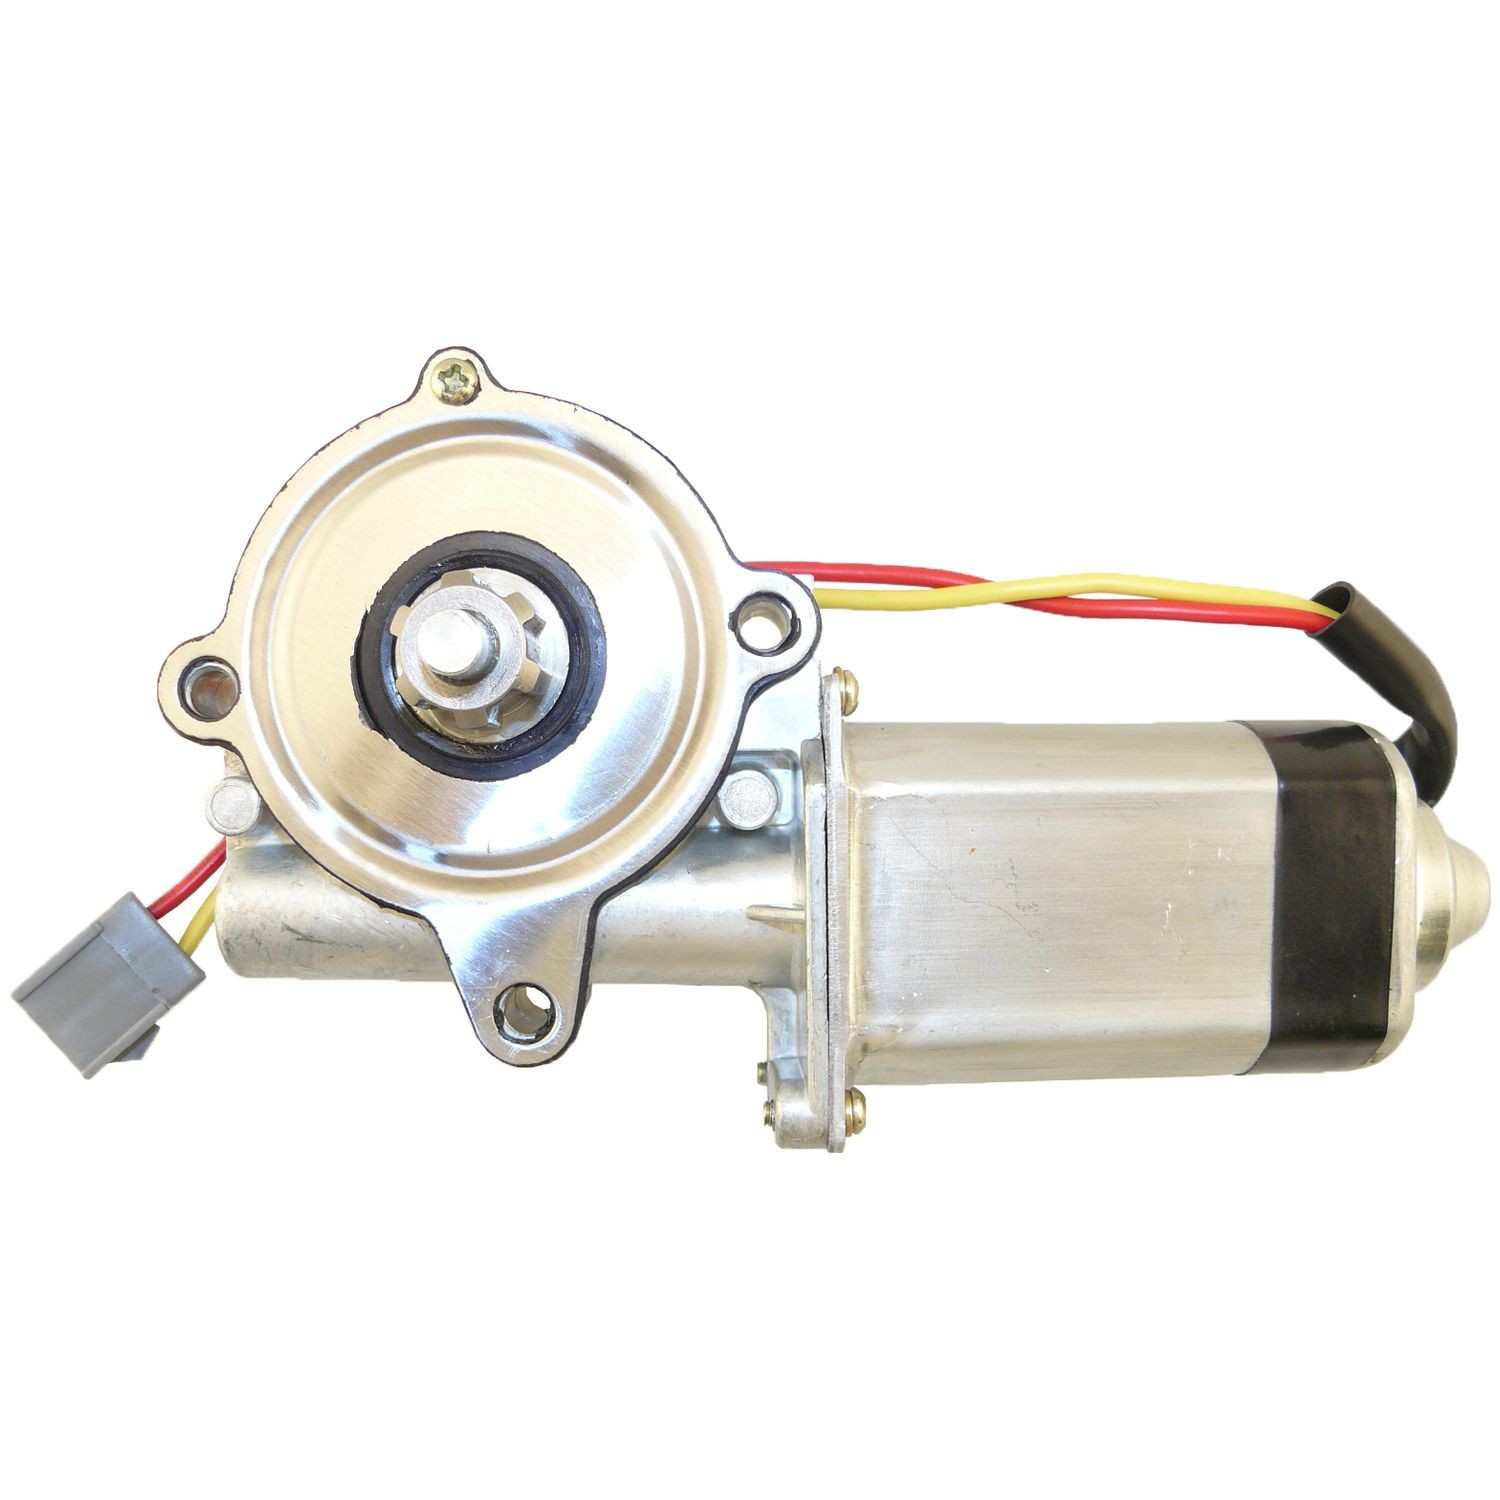 MAGNETI MARELLI OFFERED BY MOPAR - Power Window Motor (Front Left) - MGM 1AMWM83293